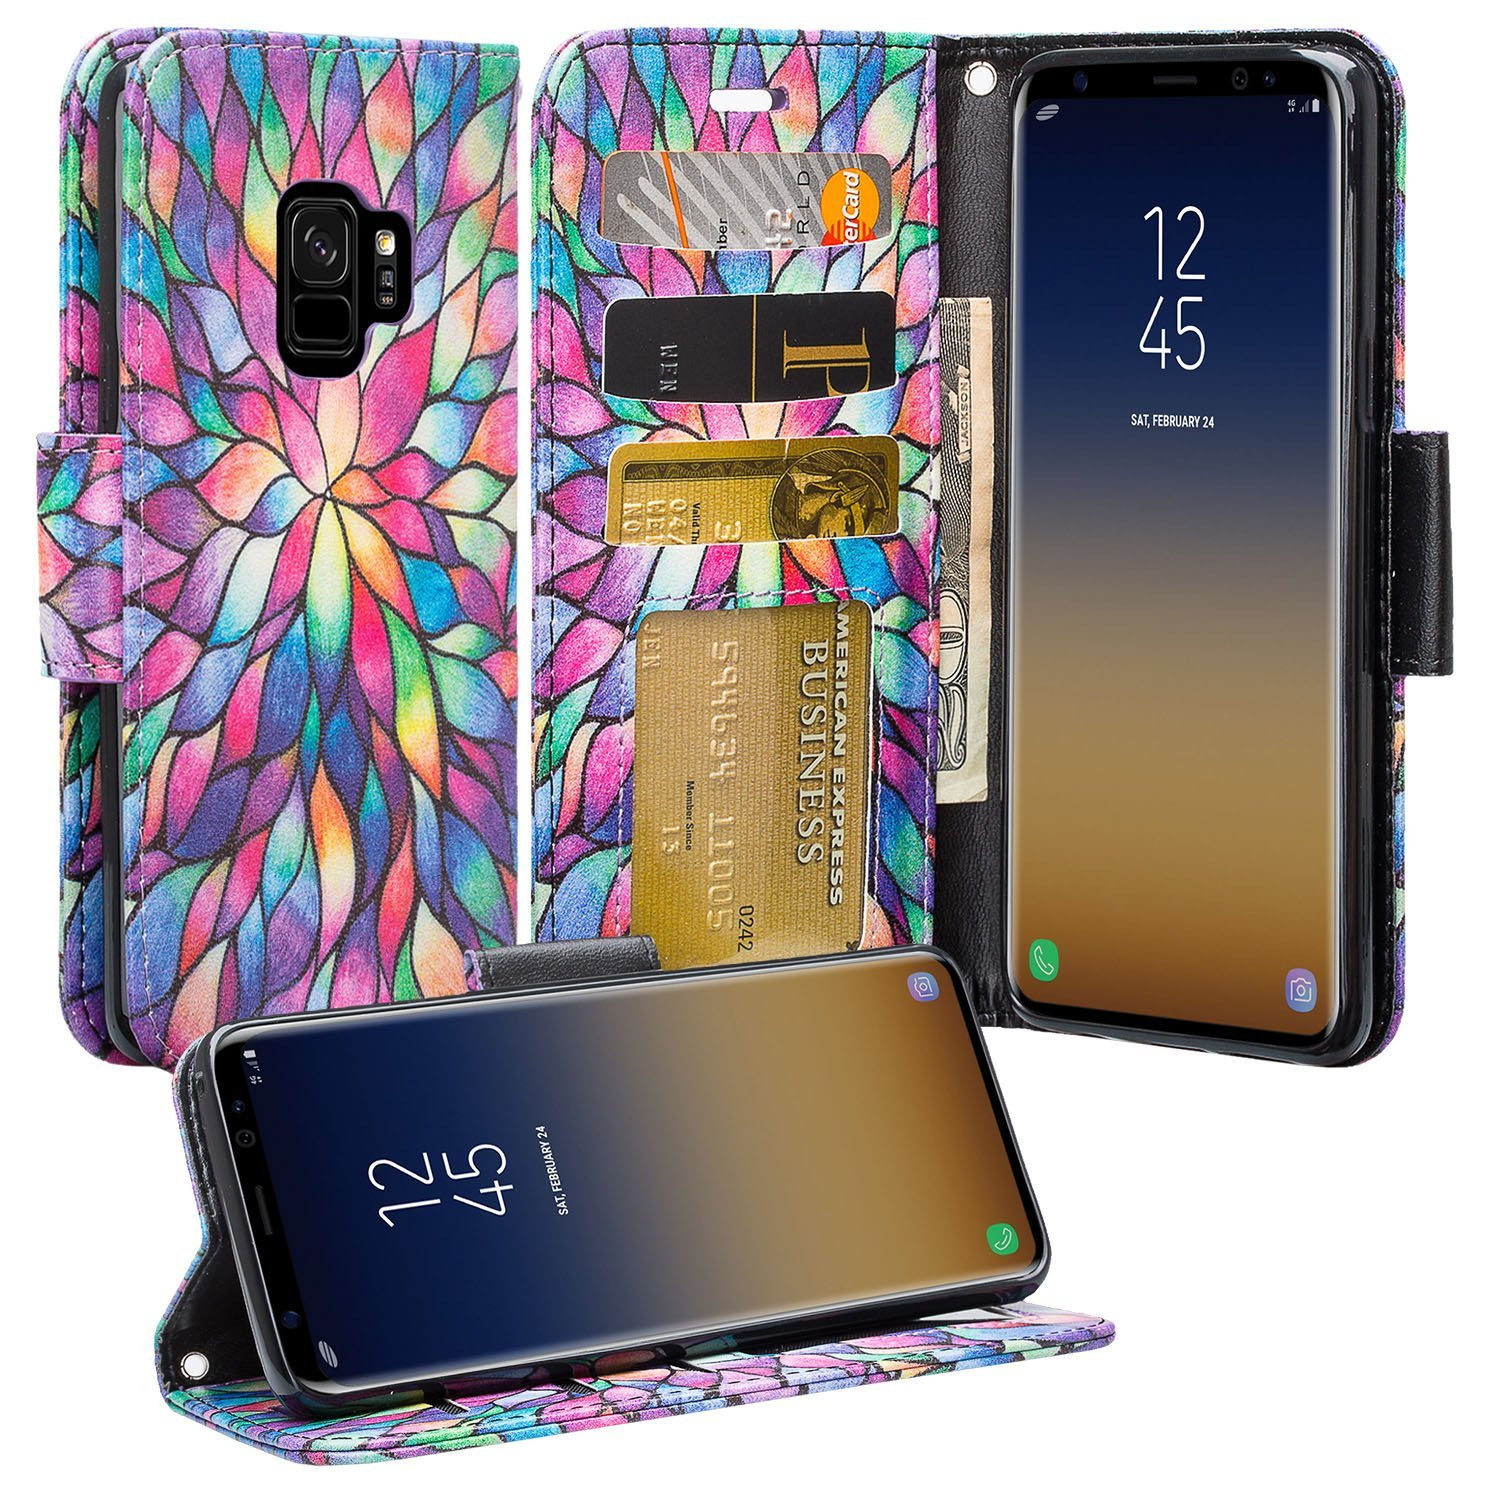 Galaxy S9 Case, Samsung Galaxy S9 Phone Cases, Flip Folio [Kickstand Feature] Pu Leather Wallet Case with ID & Credit Card Slot For Galaxy S9 - Rainbow